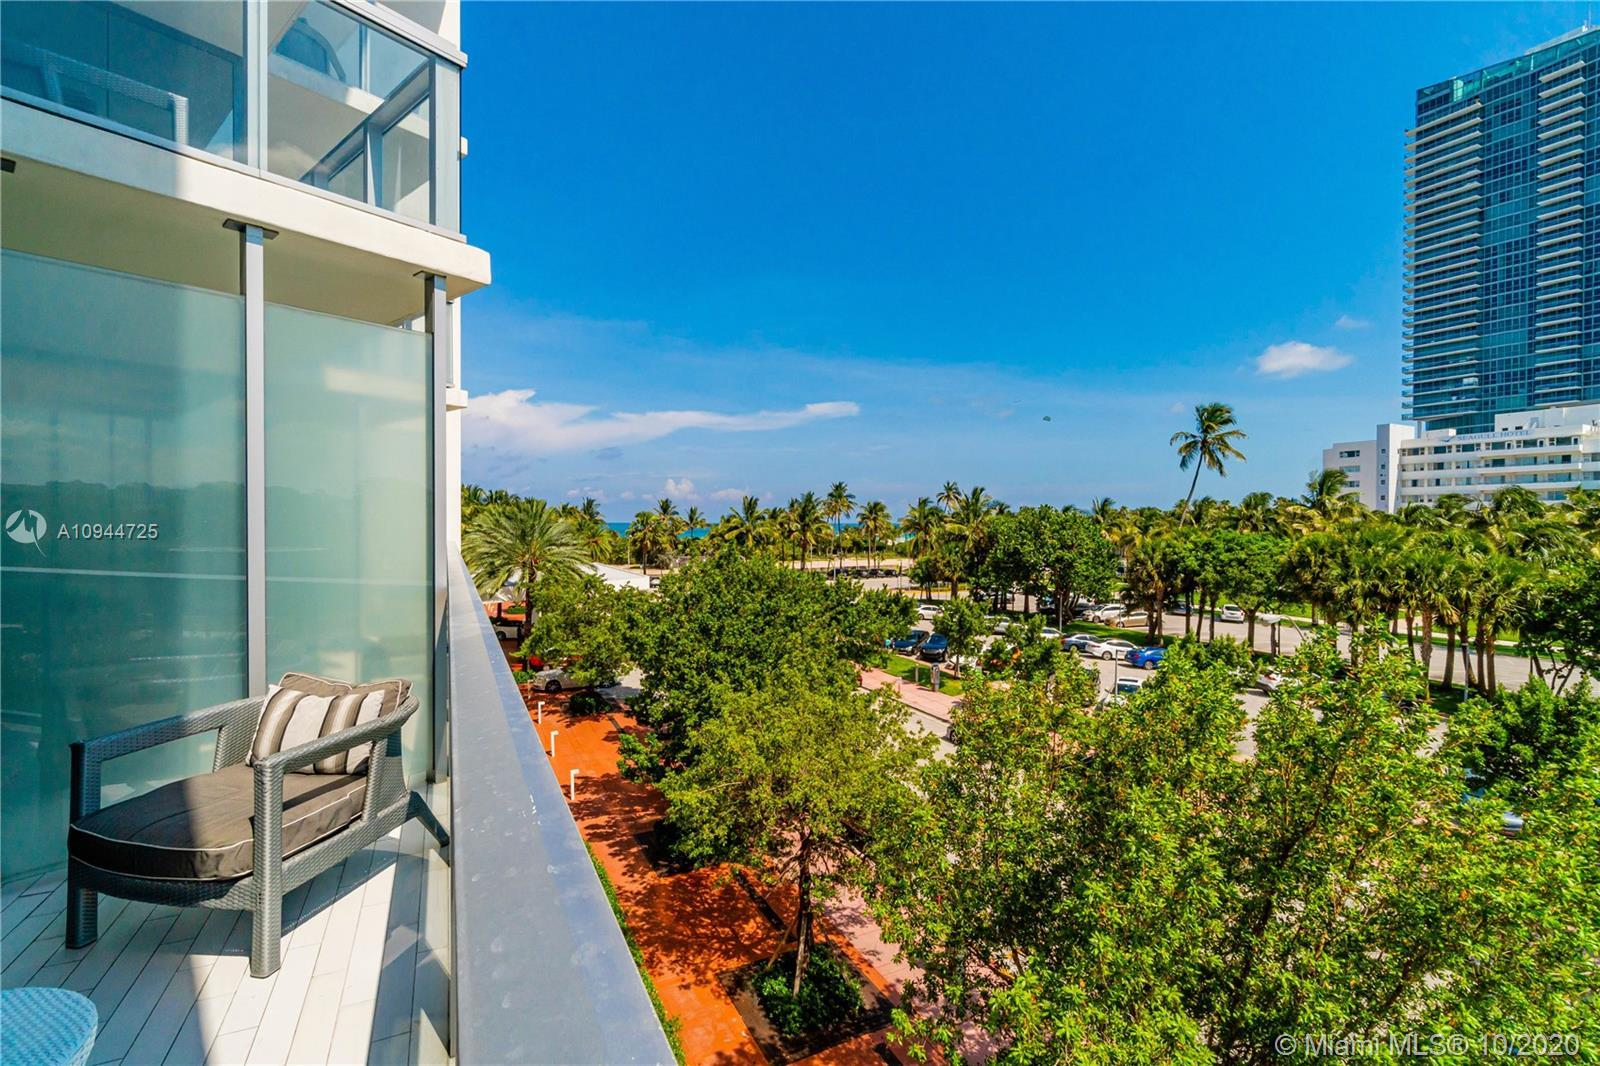 Amazing low floor studio for seasonal owners or investors at The W Hotel in the heart of South Beach